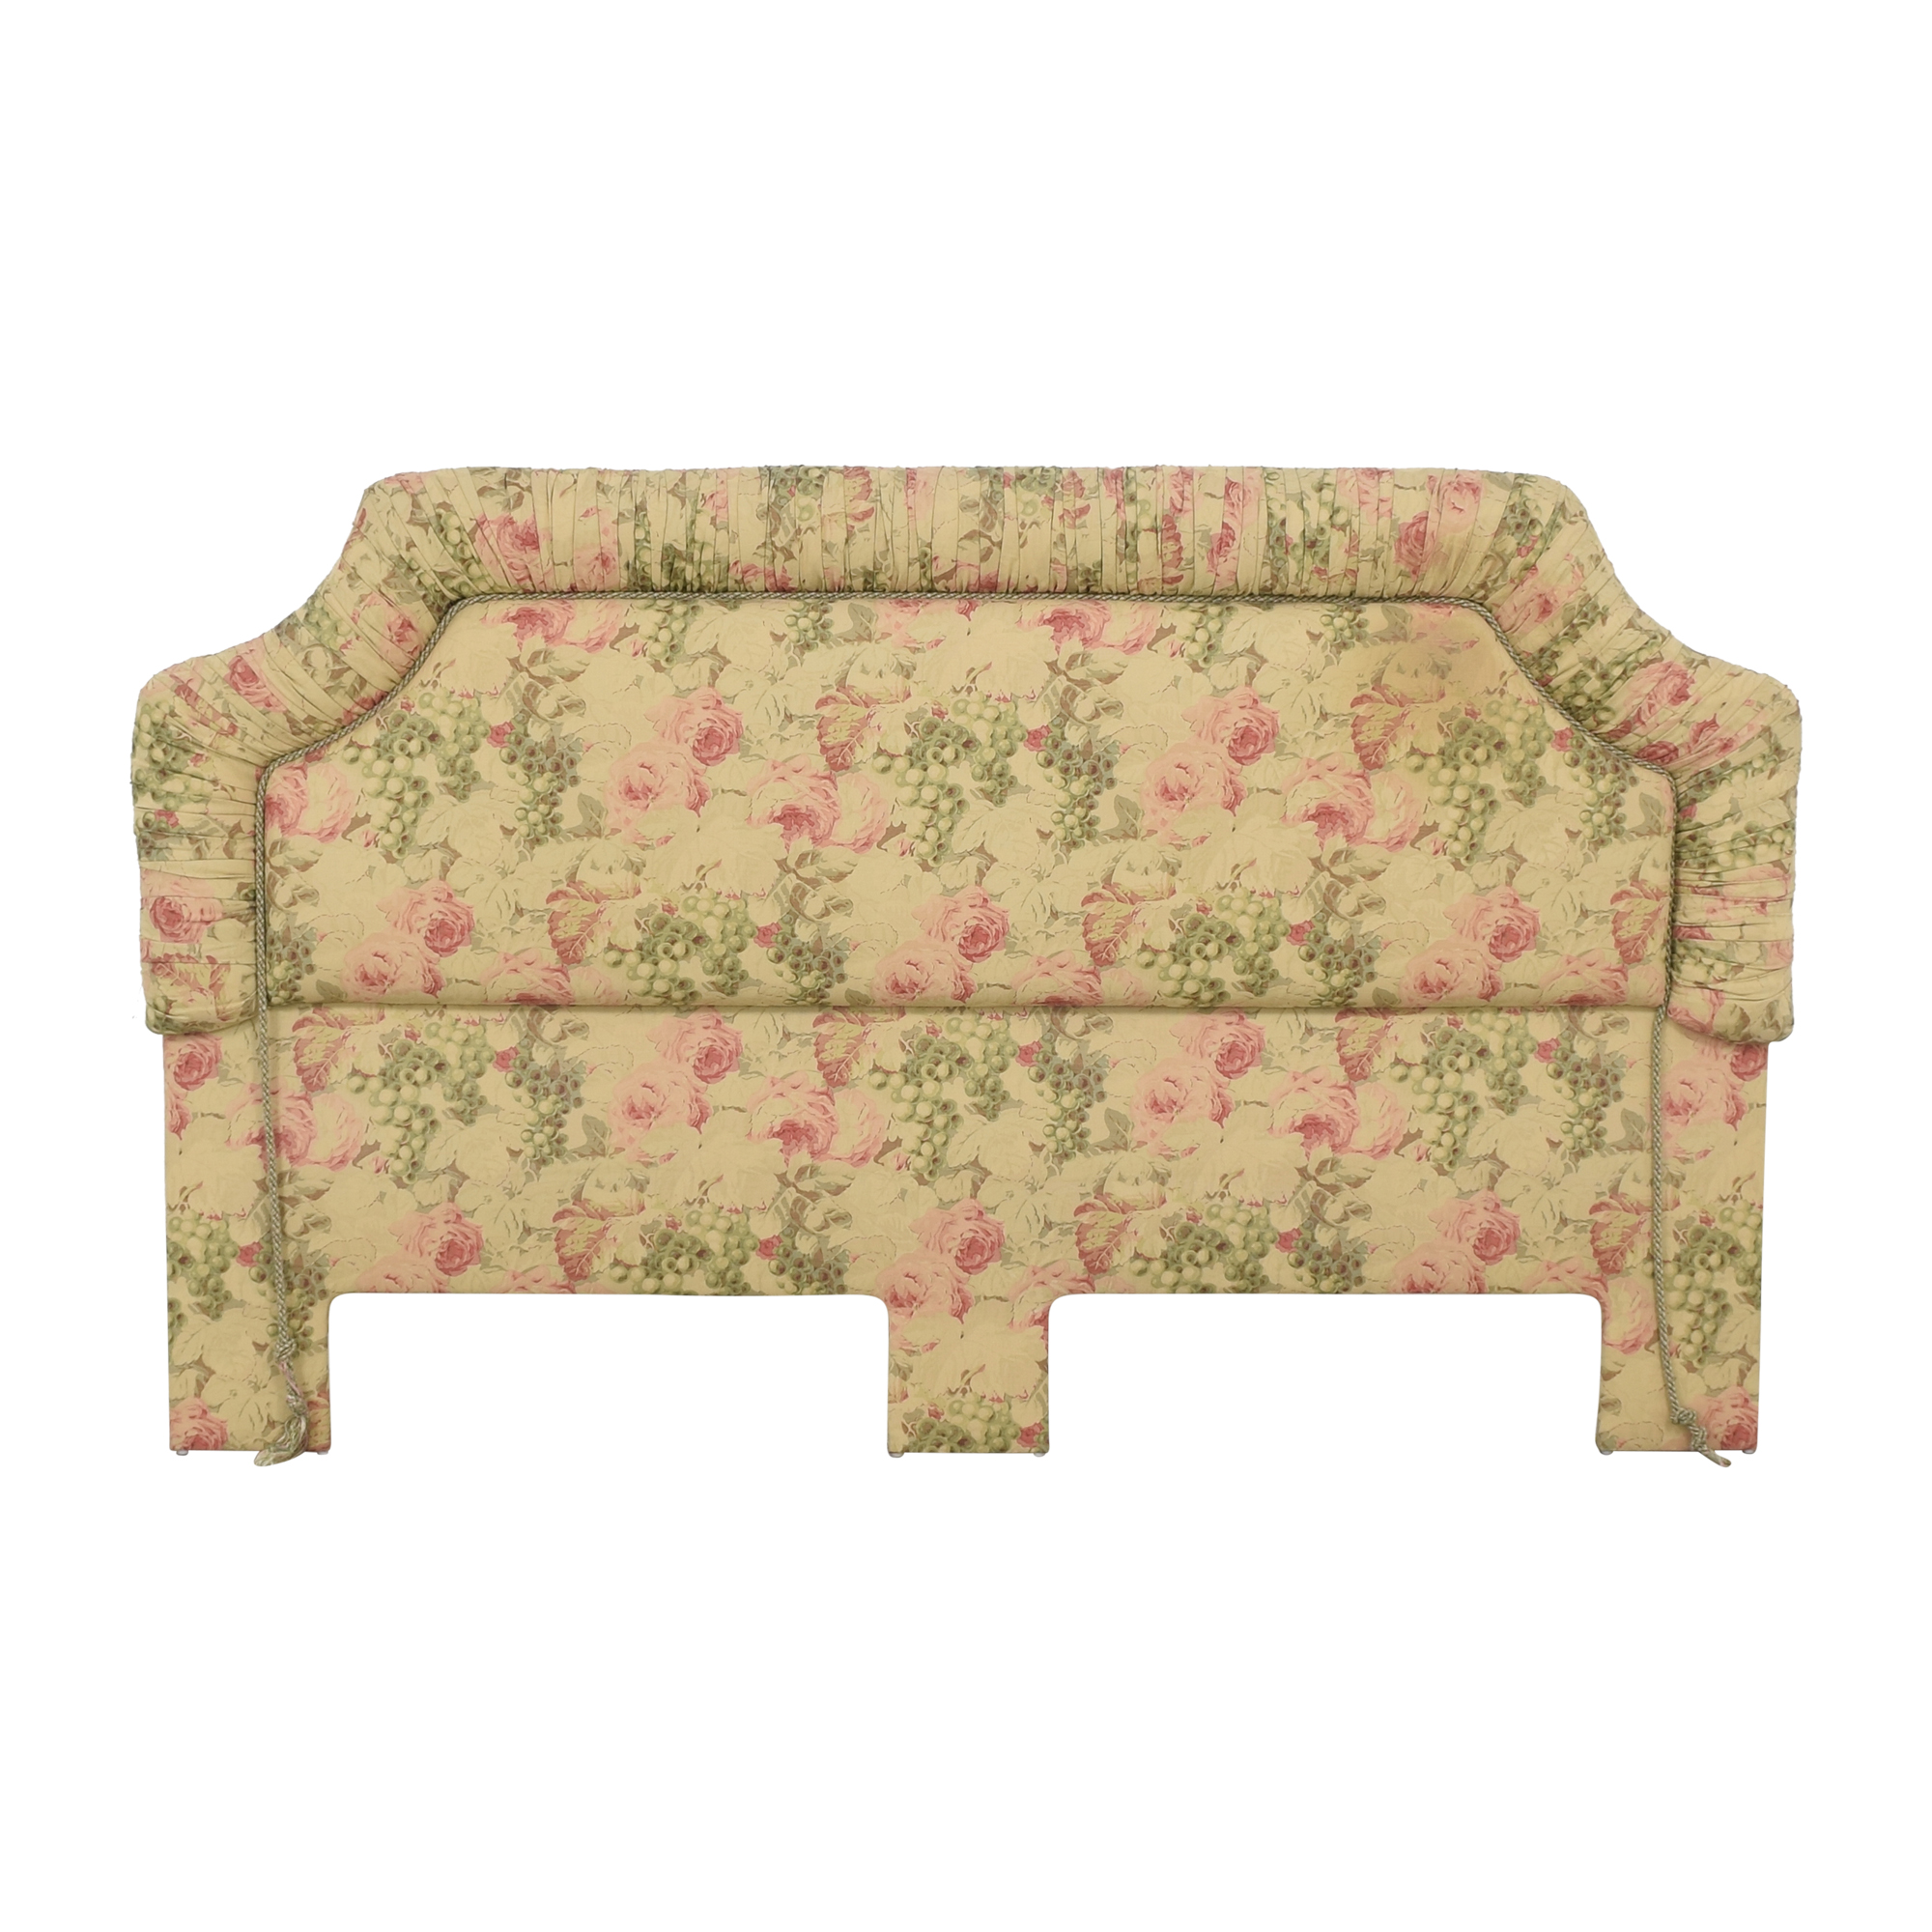 Bennison Fabric Upholstered Headboard multicolored